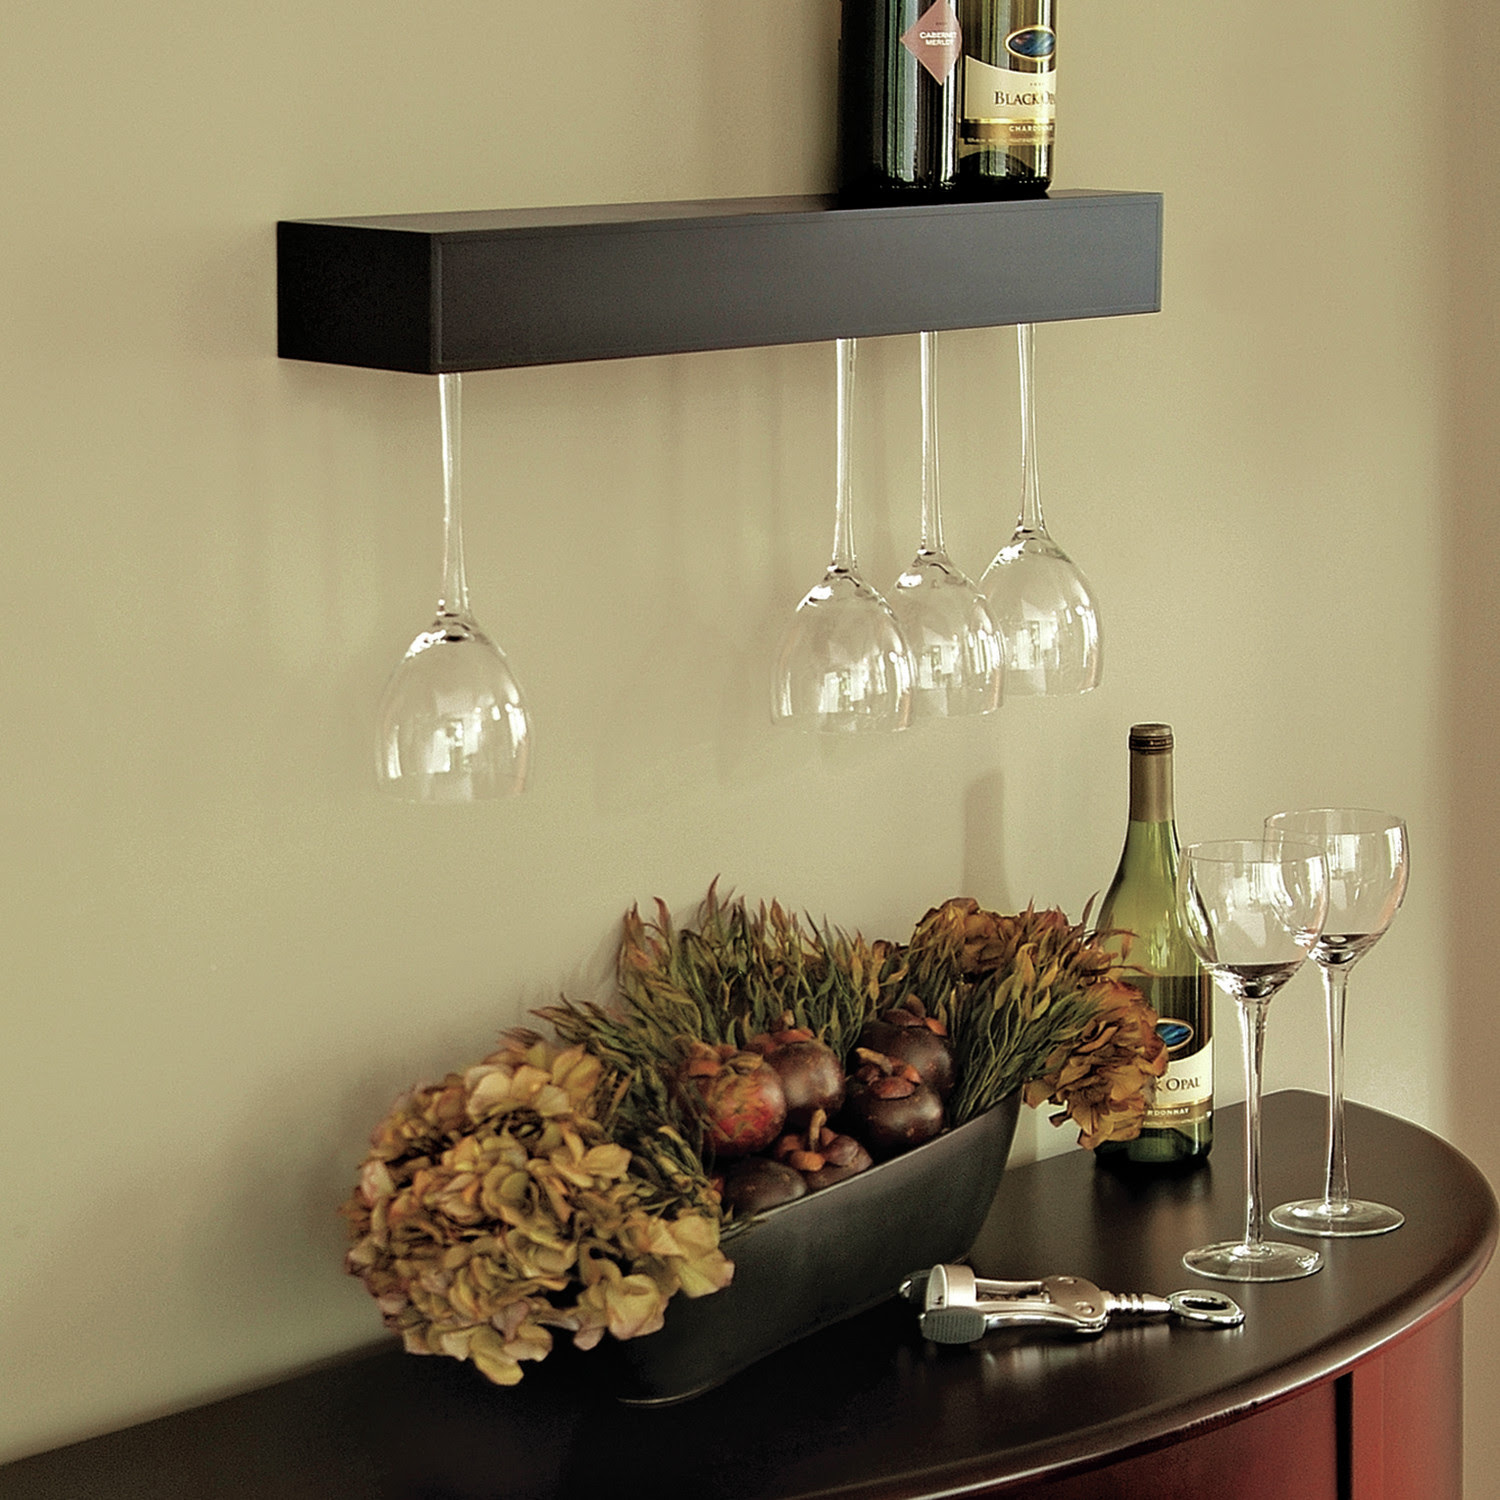 Cool Wall Mounted Wine Glass Holder Homesfeed